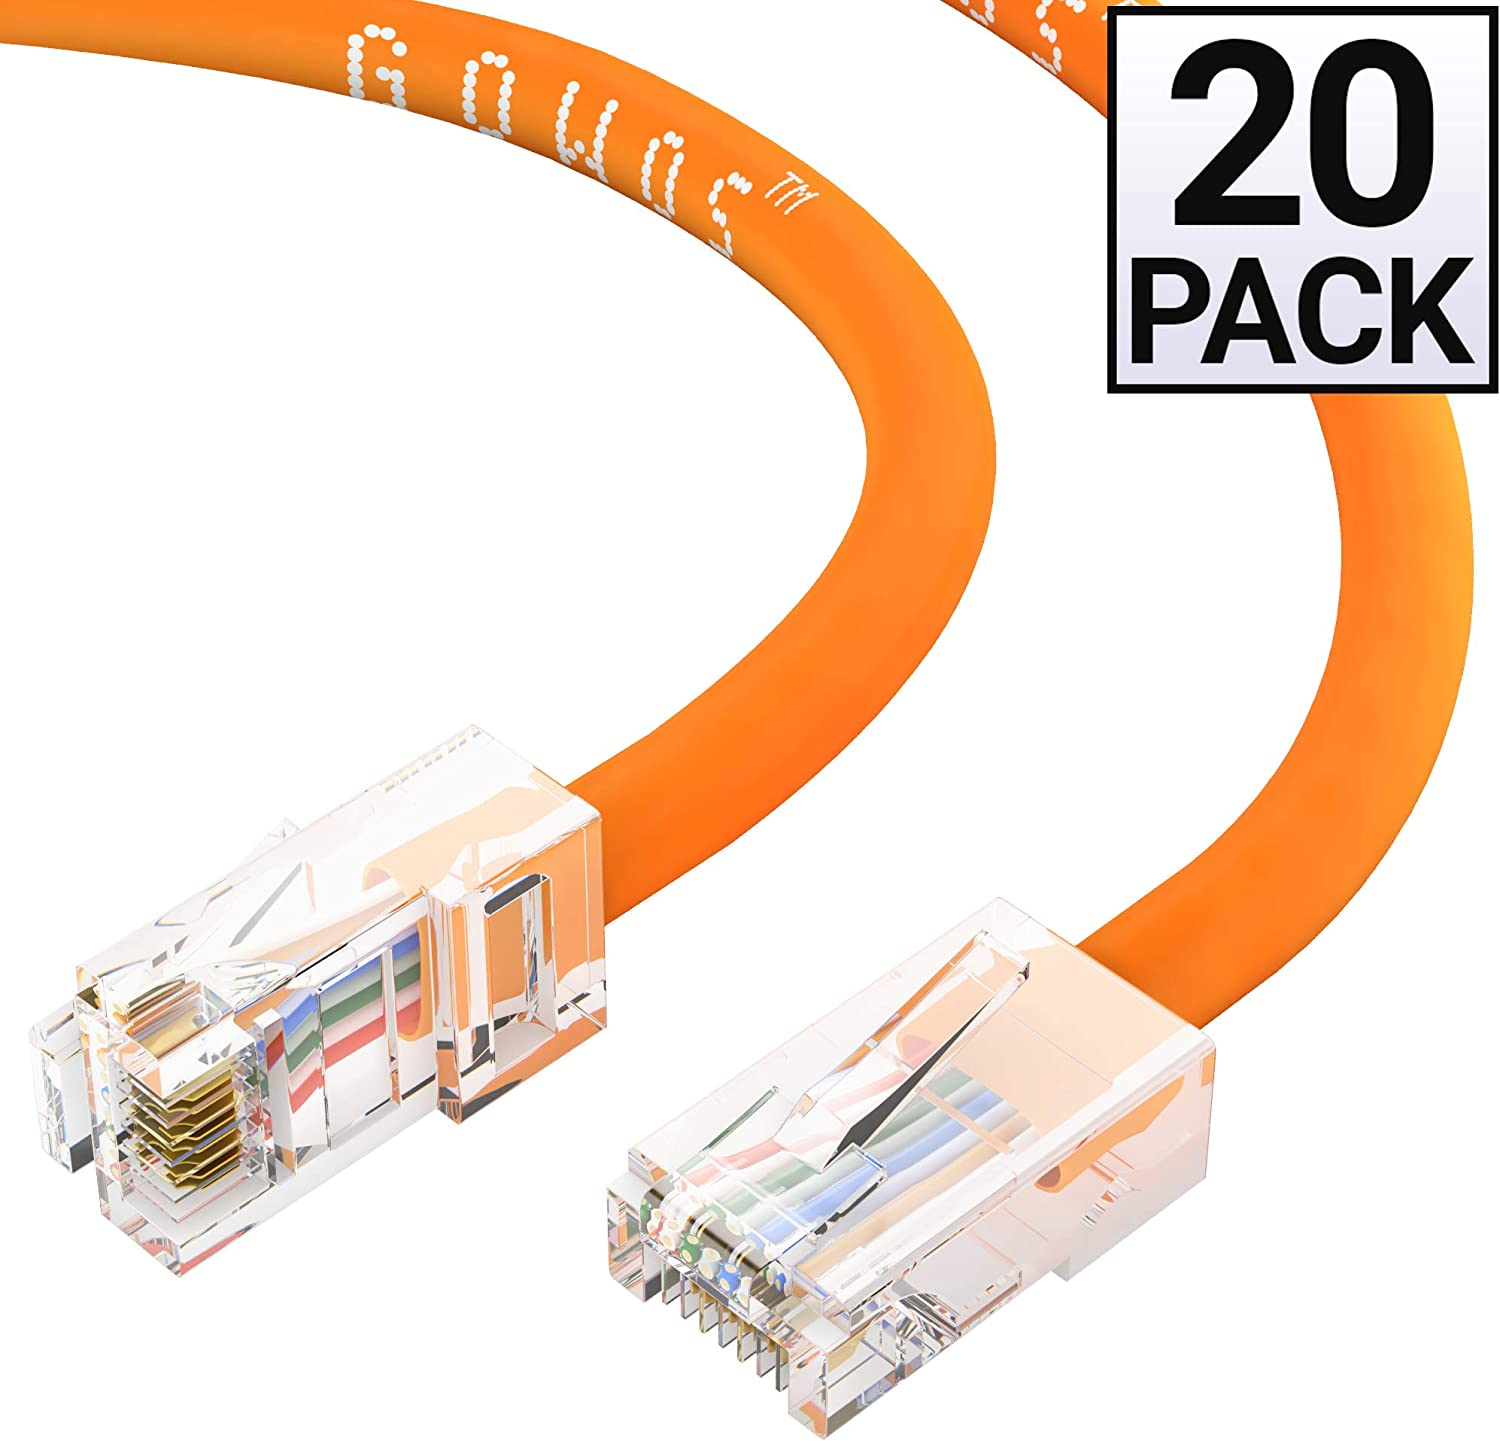 10 Gigabit//Sec High Speed LAN Internet//Patch Cable 550MHz Orange GOWOS Cat6 Ethernet Cable 24AWG Network Cable with Gold Plated RJ45 Non-Booted Connector 20-Pack - 0.5 Feet